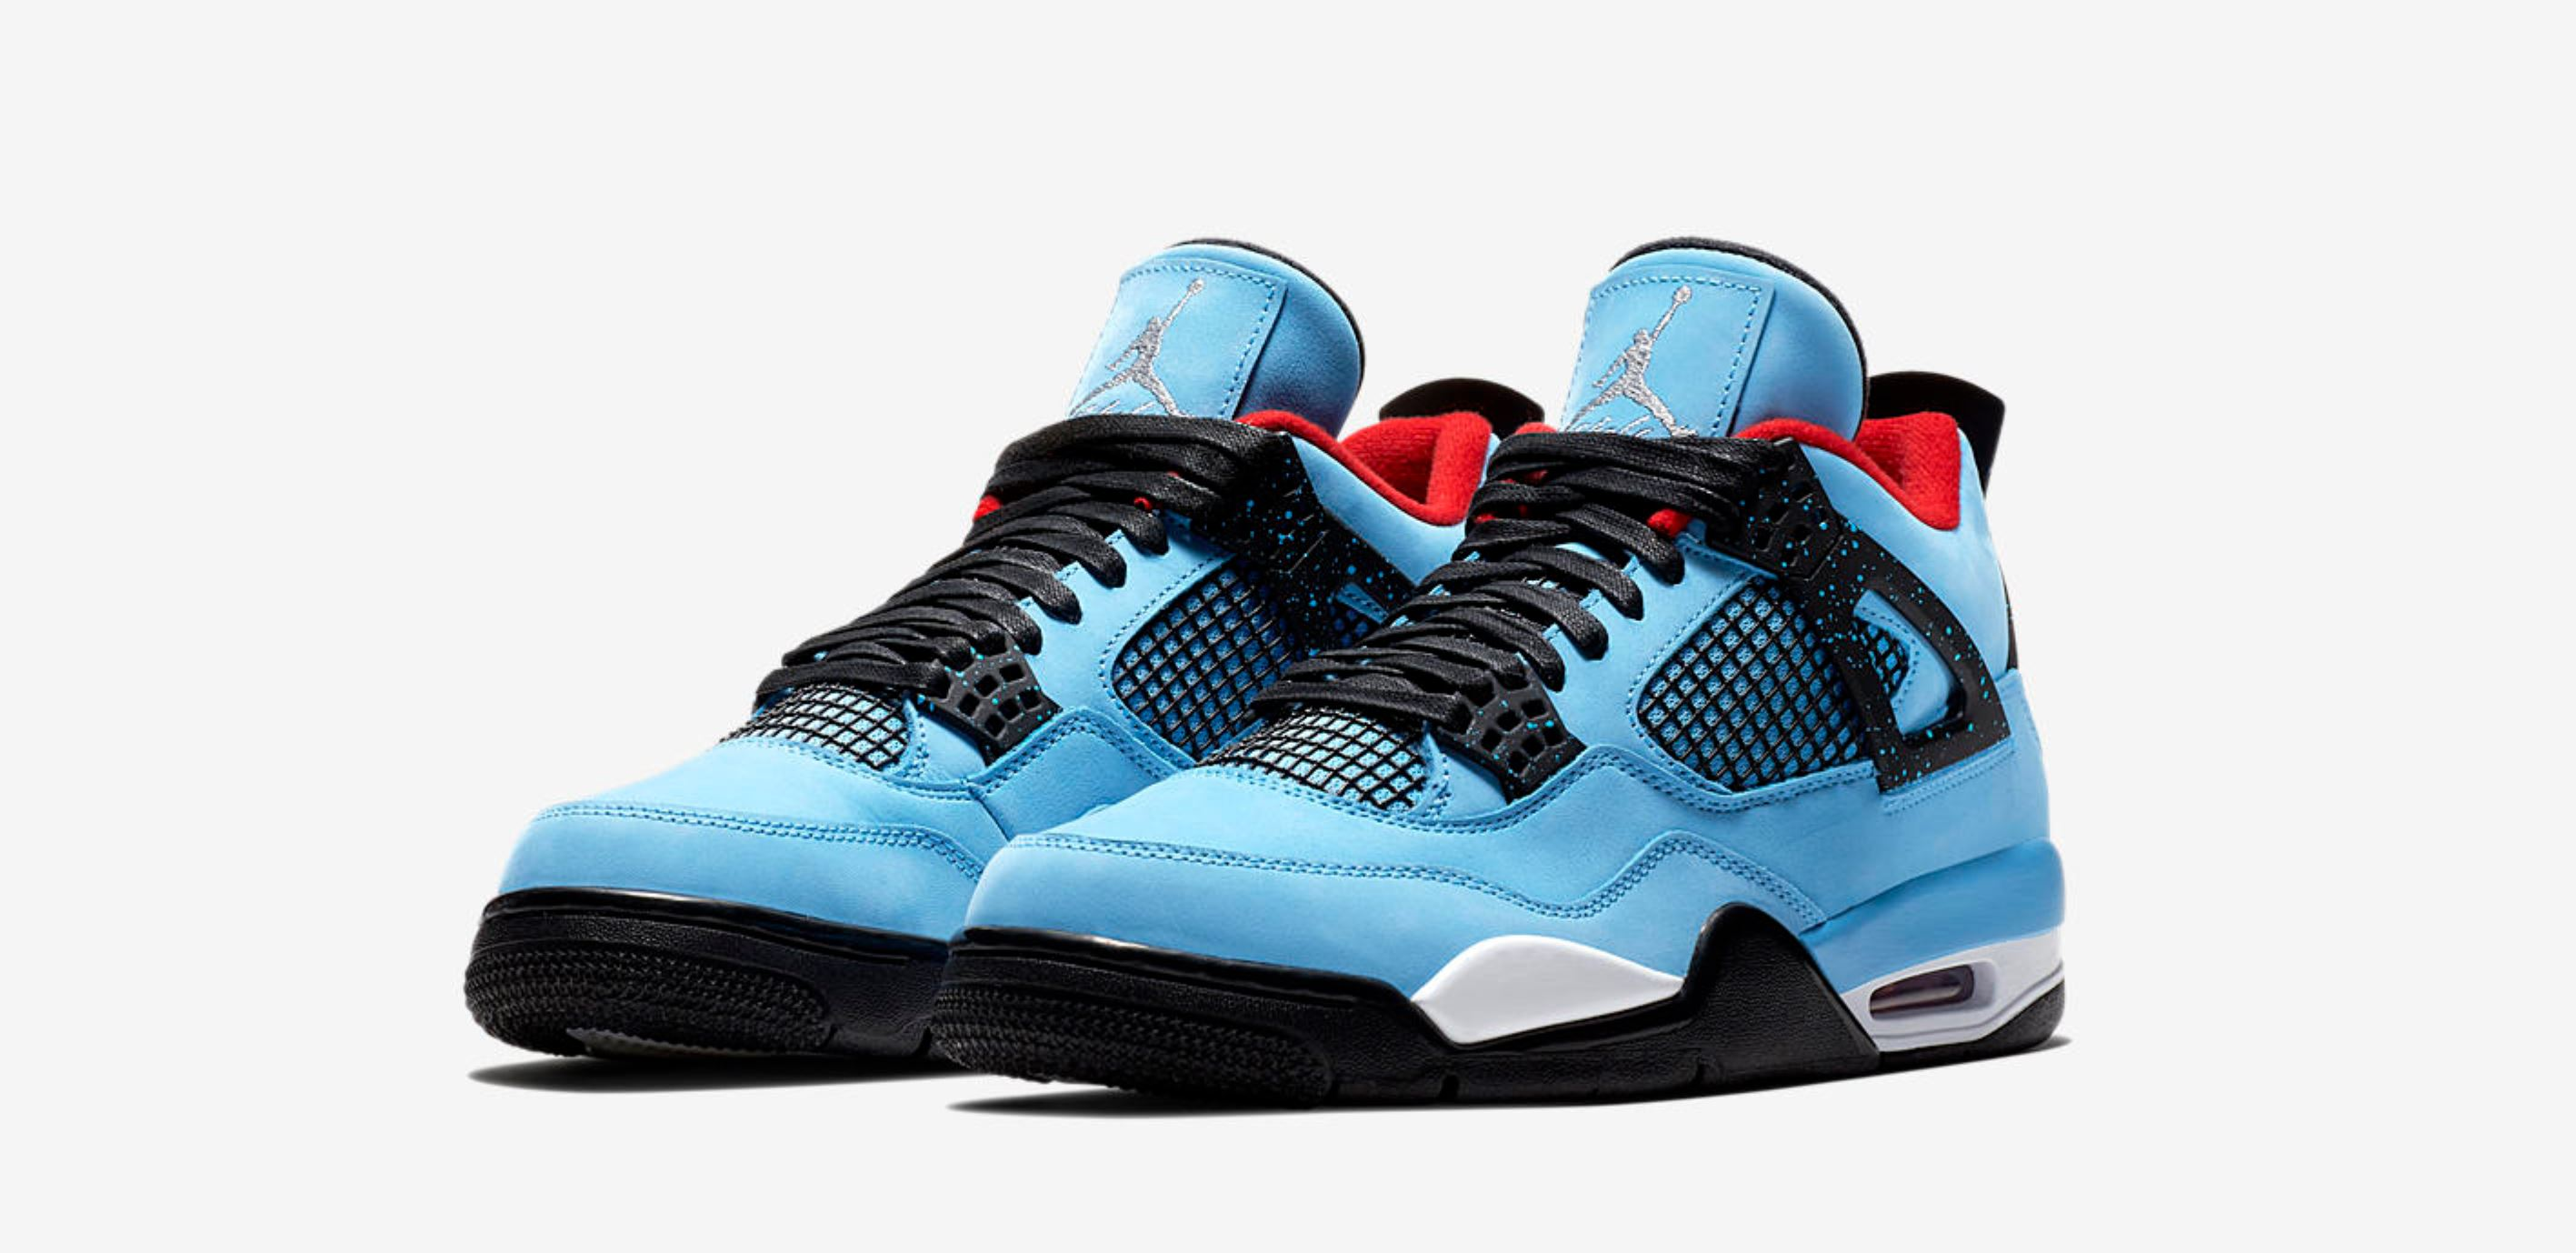 air jordan 4 travis scott release date 1